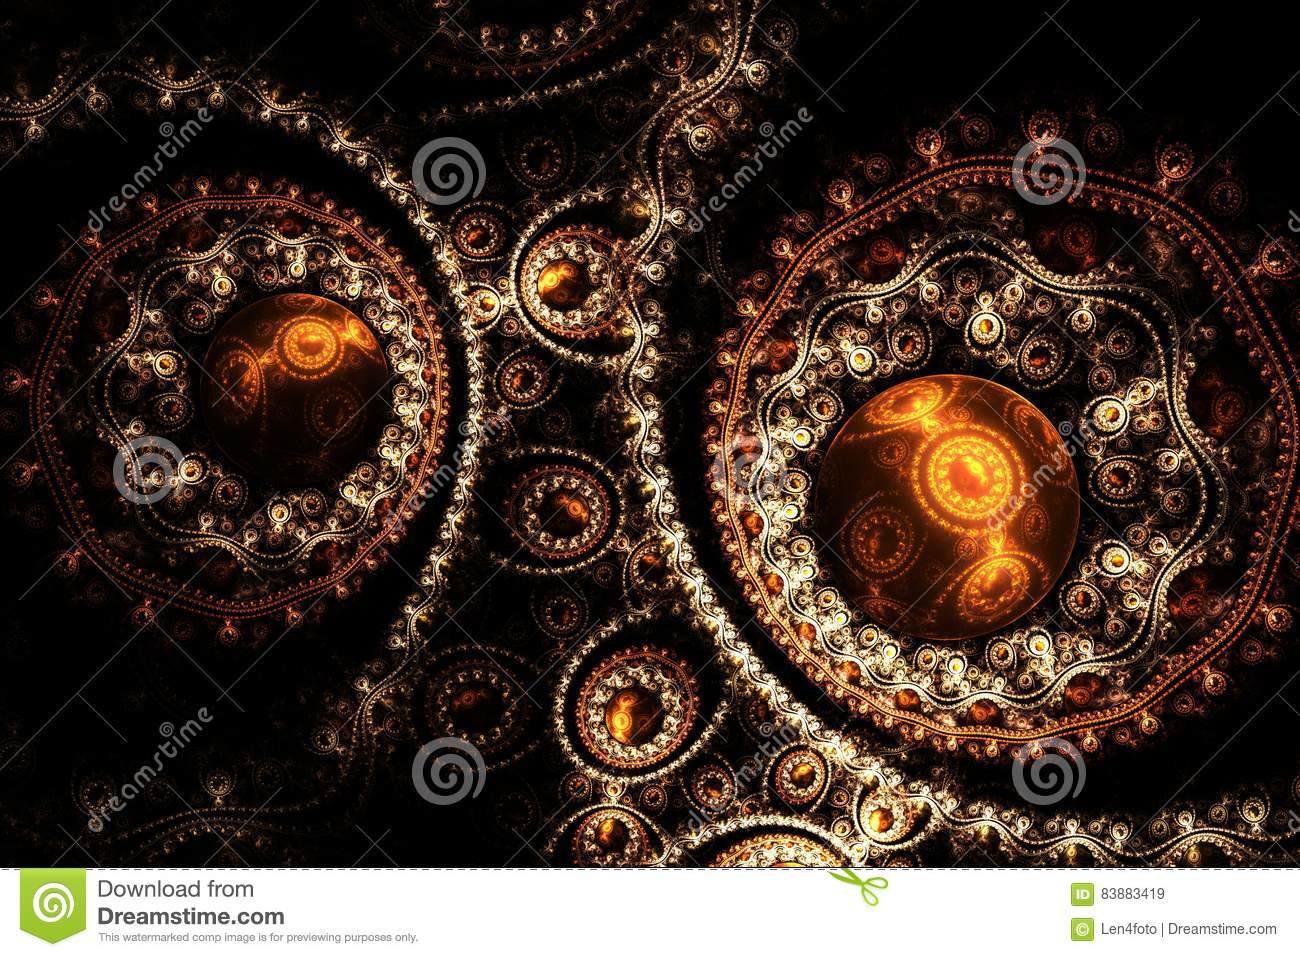 Decorative abstract fantasy fractal round